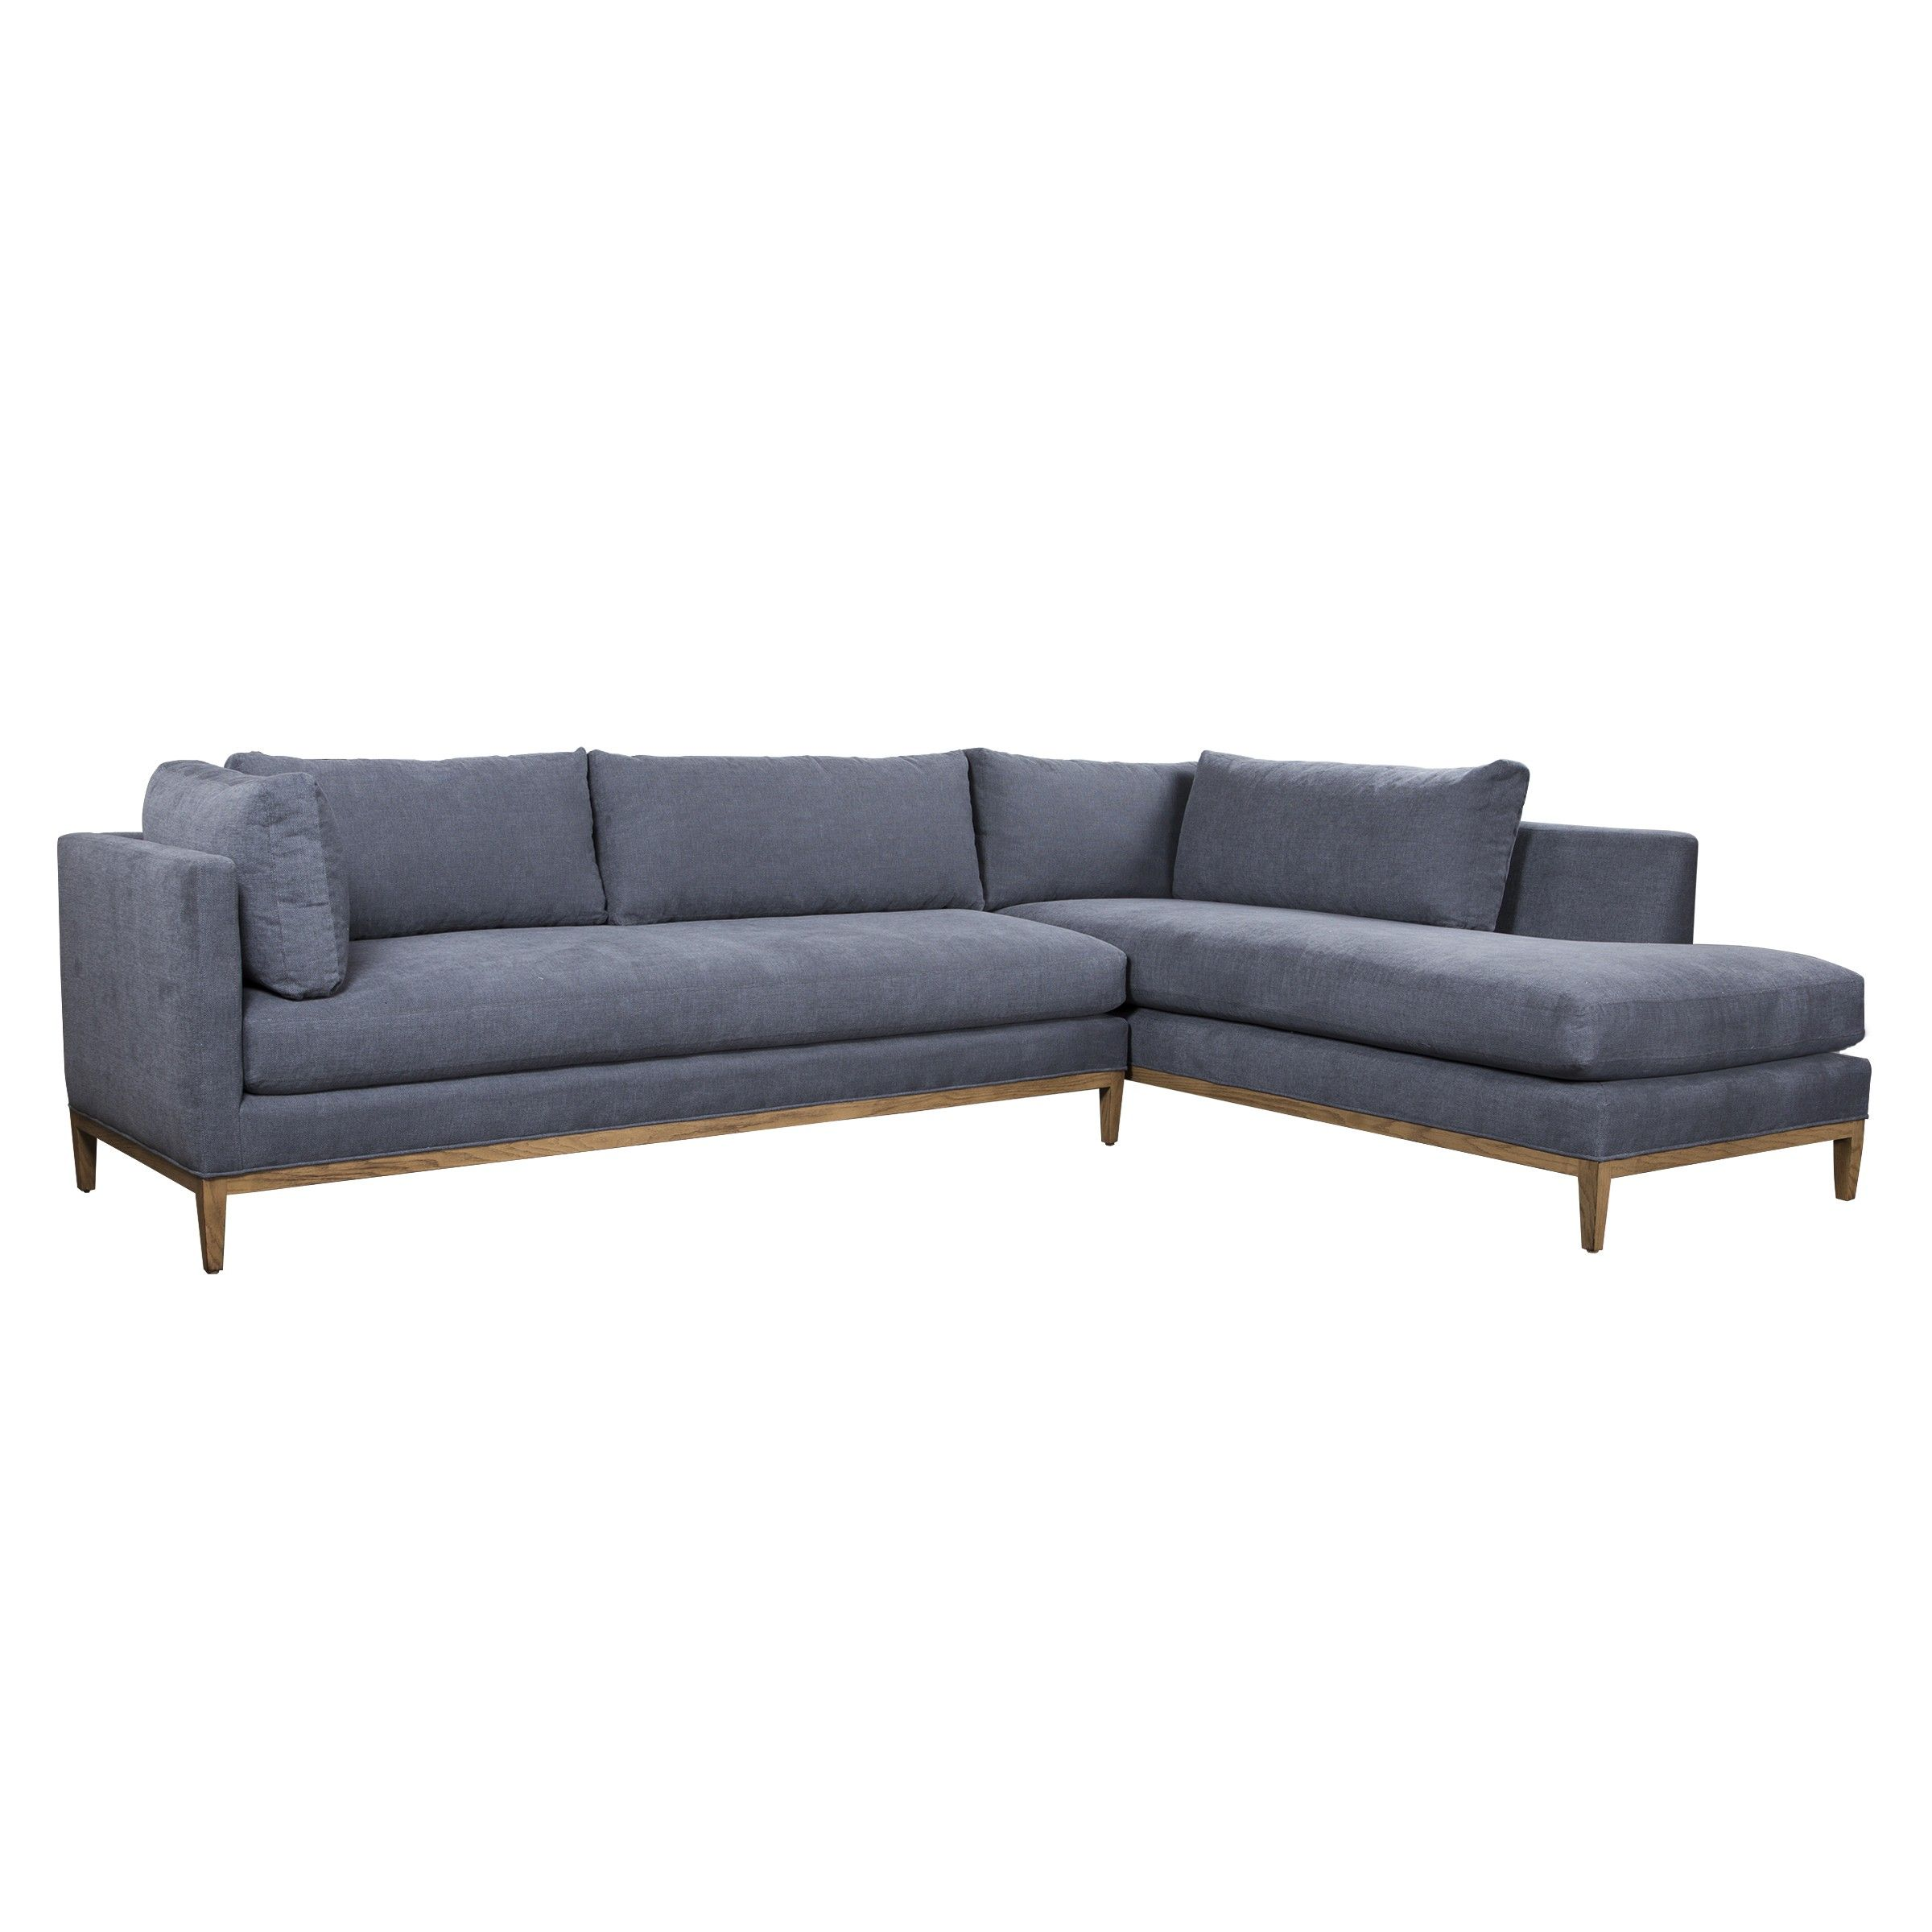 Valerie Sectional Sectionals Seating Living Hd Ercup Online No Ordinary Furniture